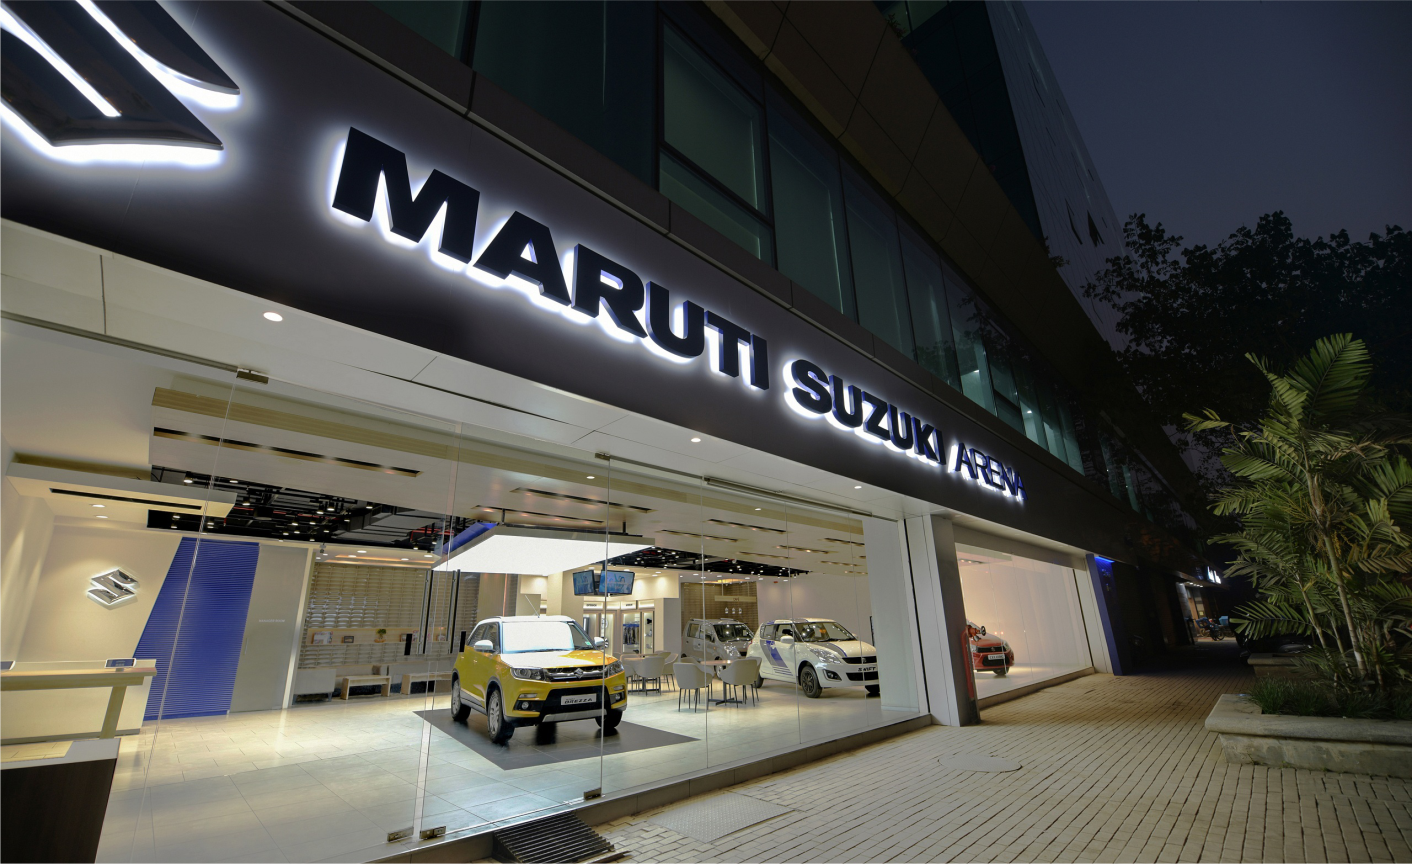 Maruti Suzuki Arena - New Digitally Transformed Car Showroom 1